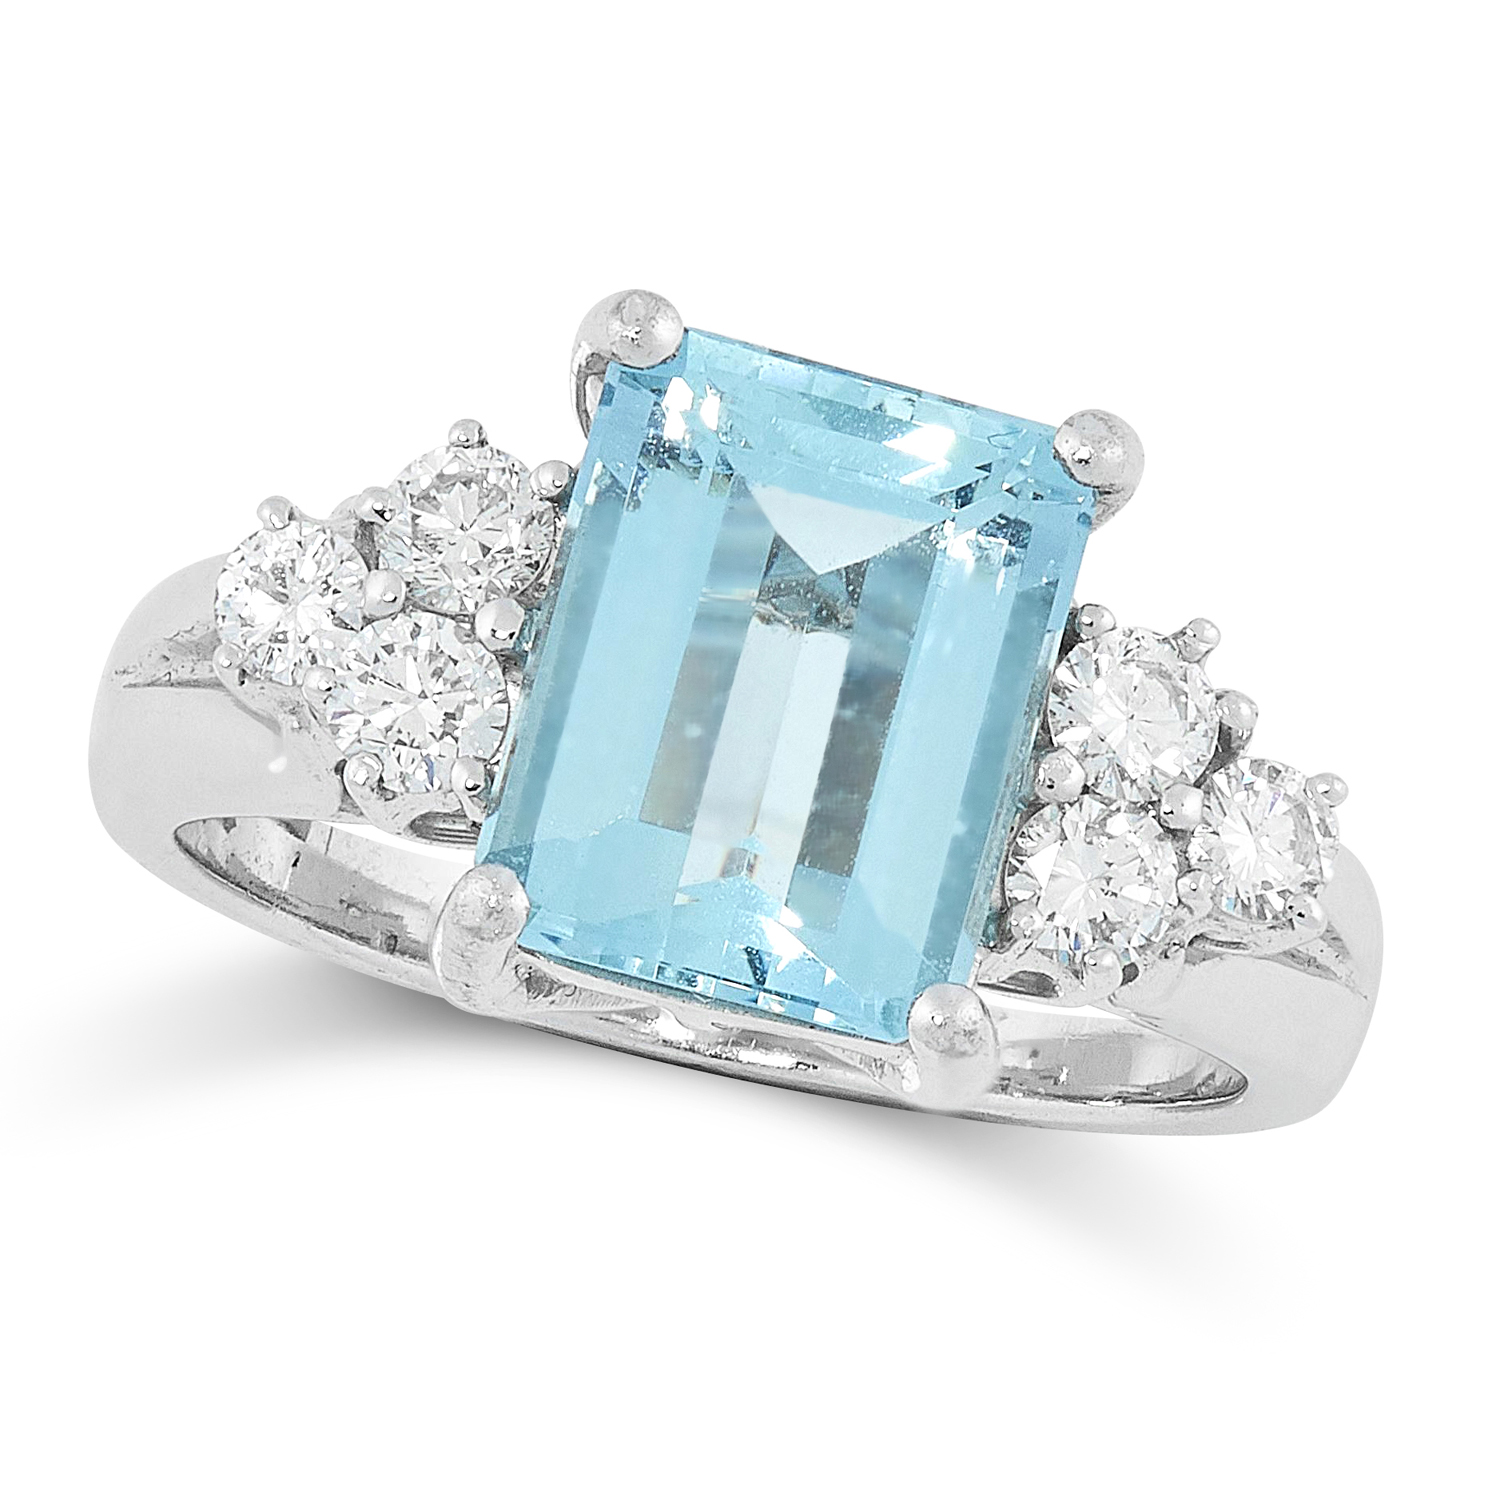 AN AQUAMARINE AND DIAMOND RING set with a step cut aquamarine of 1.91 carats between round cut